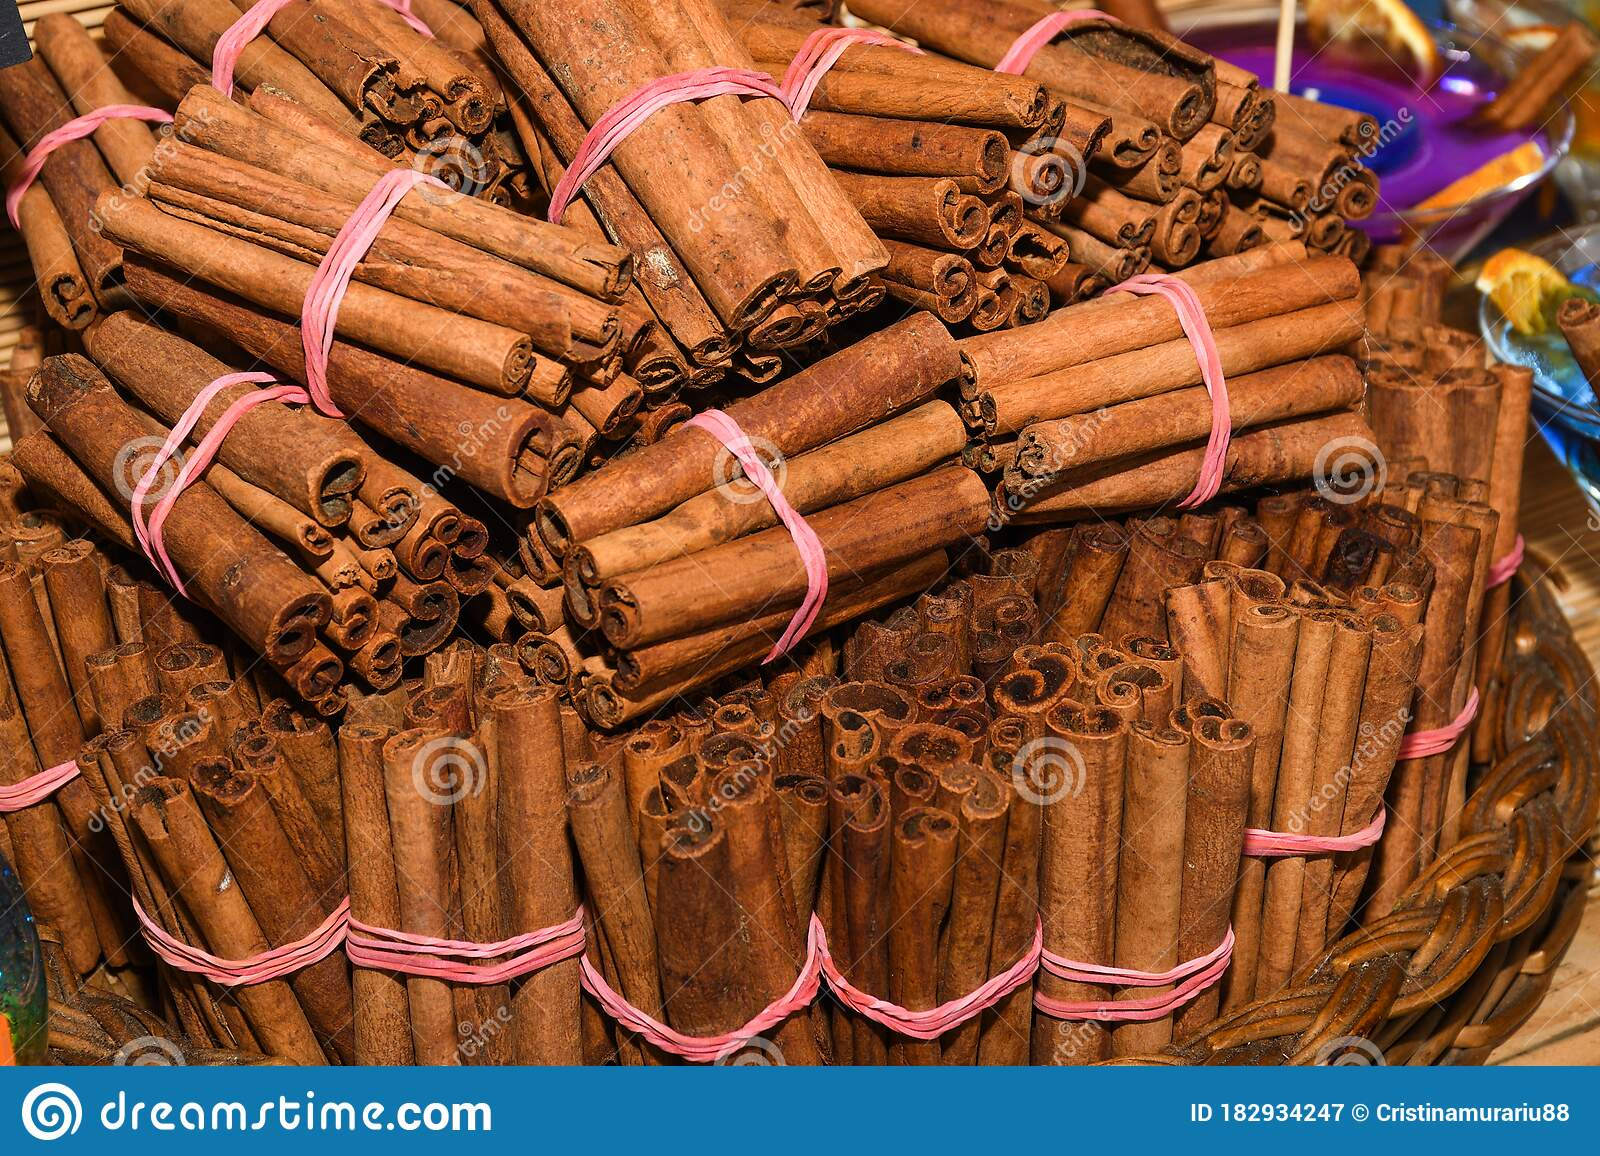 Bunch Of Cinnamon Sticks For Sale On Counter Top At The ...